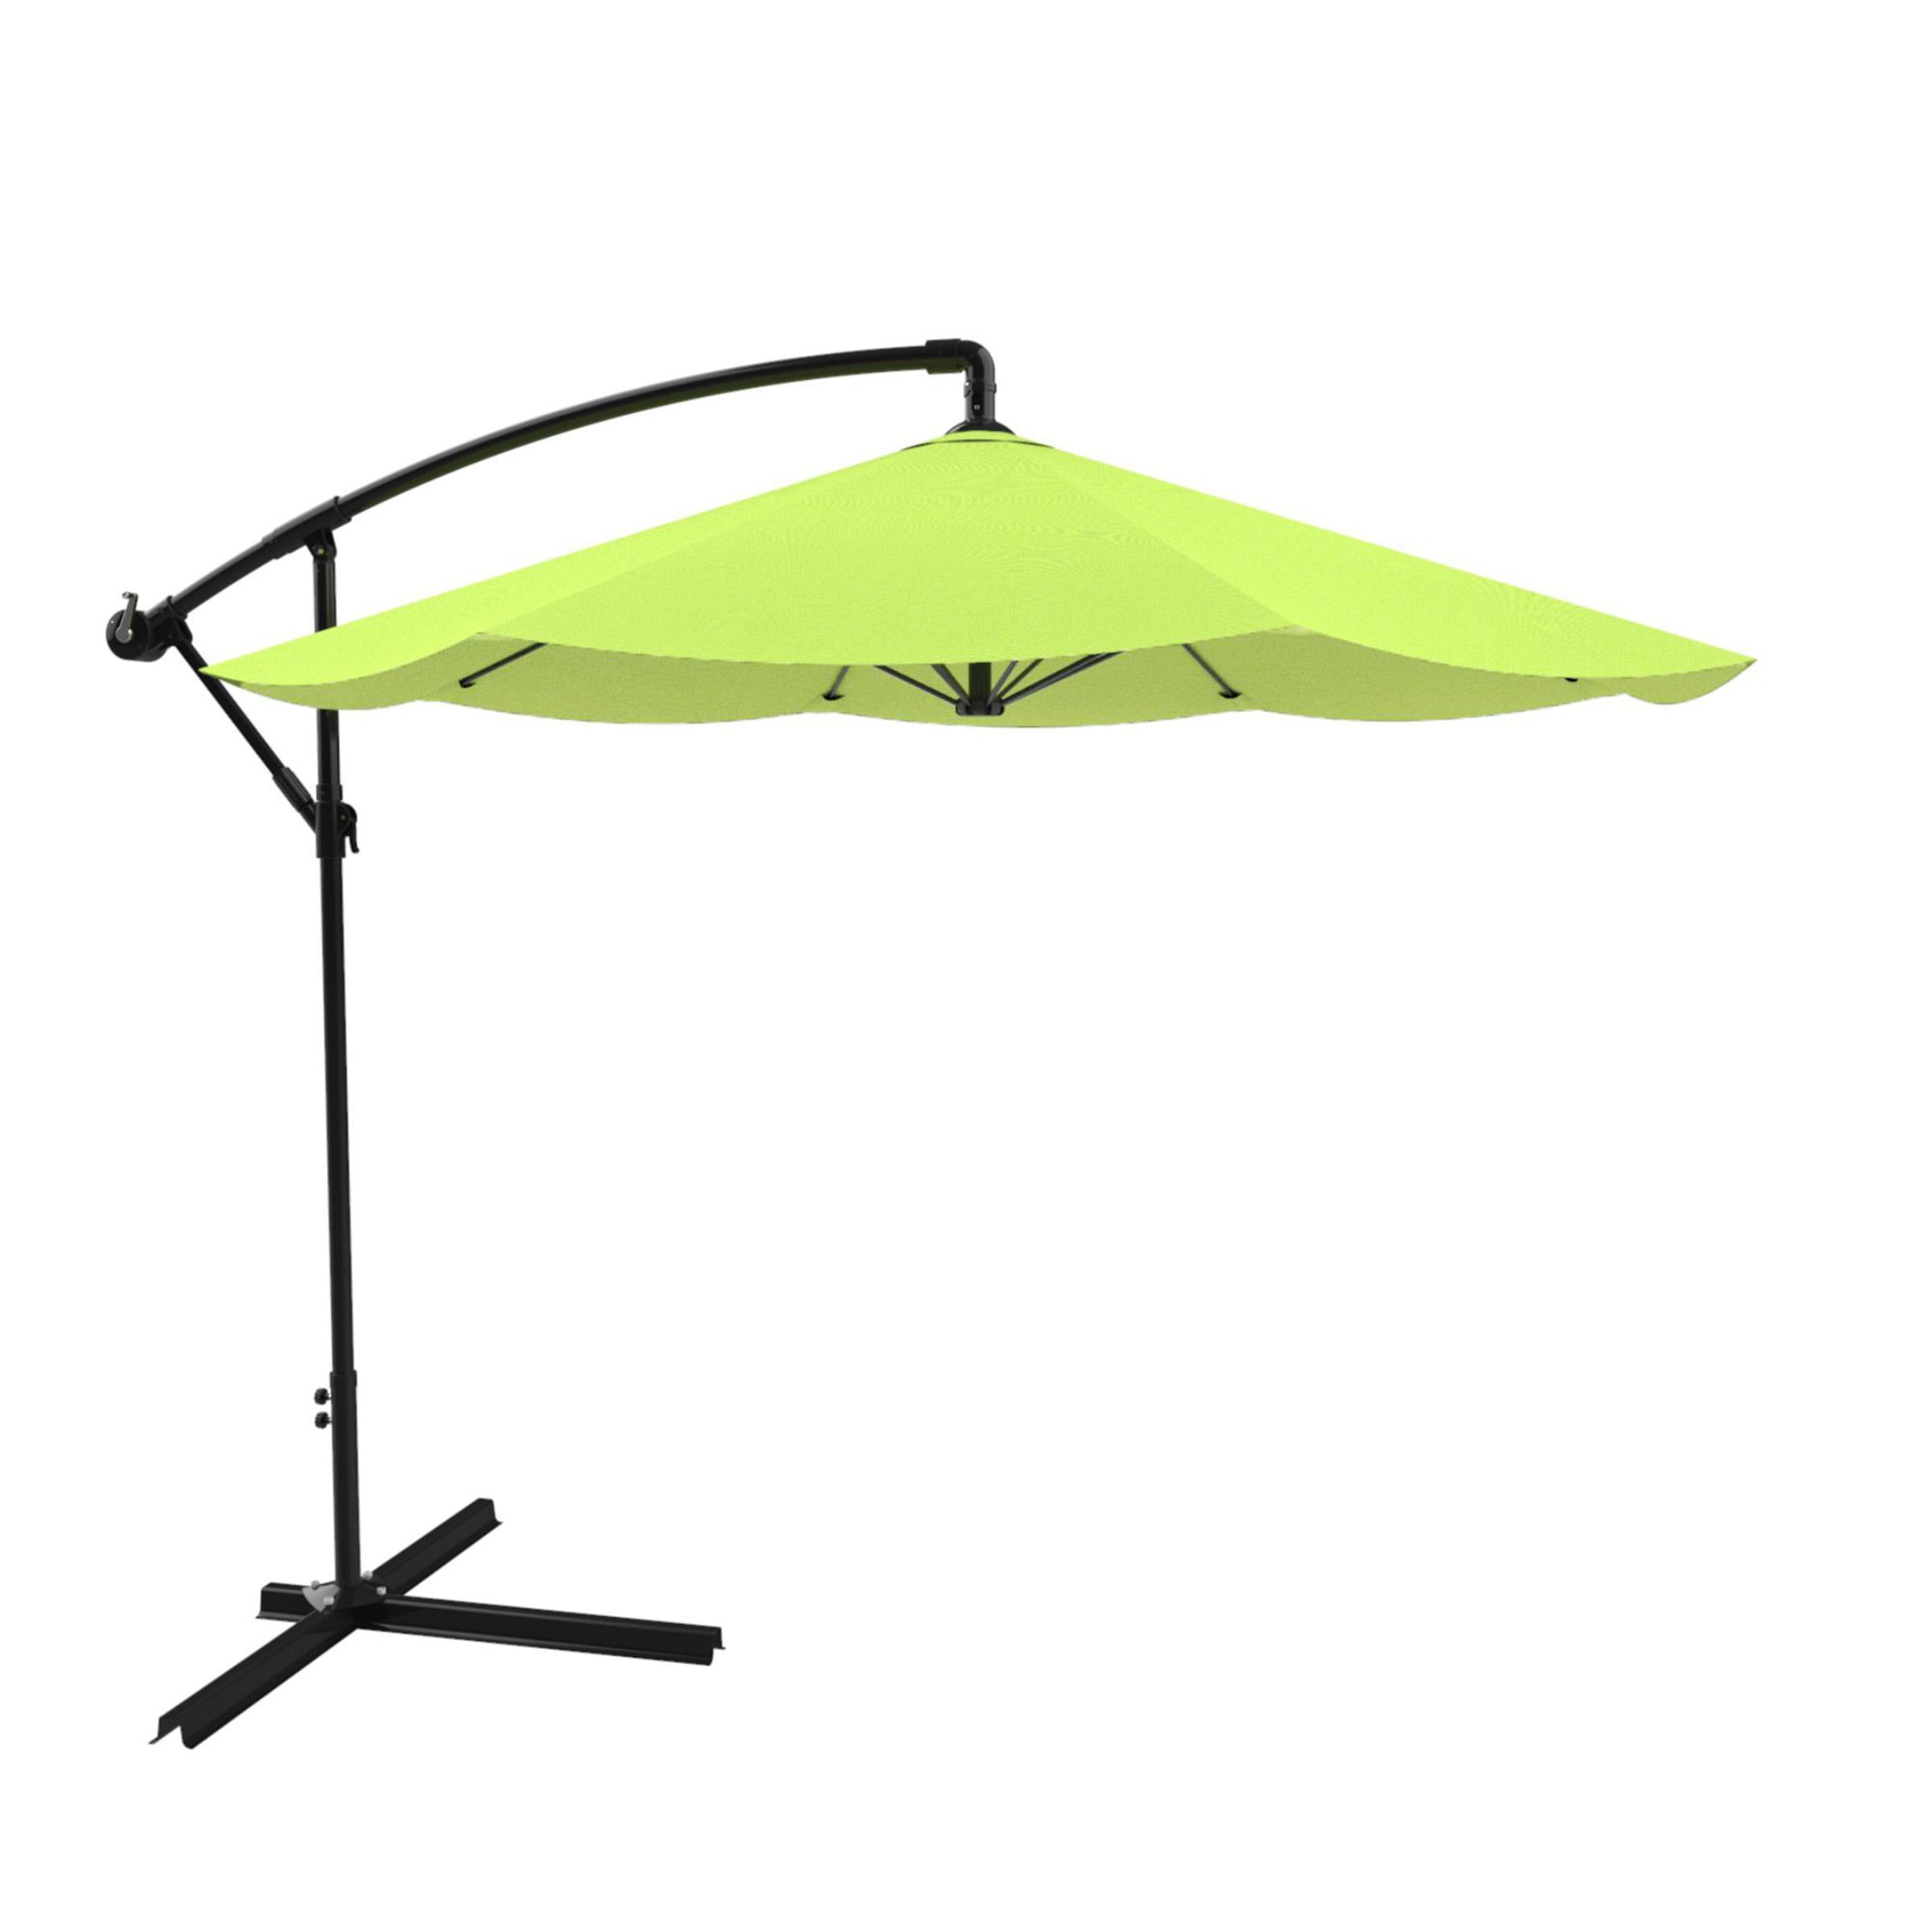 Patio Umbrella, Cantilever Hanging Outdoor Shade, Easy Crank and Base for Table, Deck,... by Trademark Global LLC